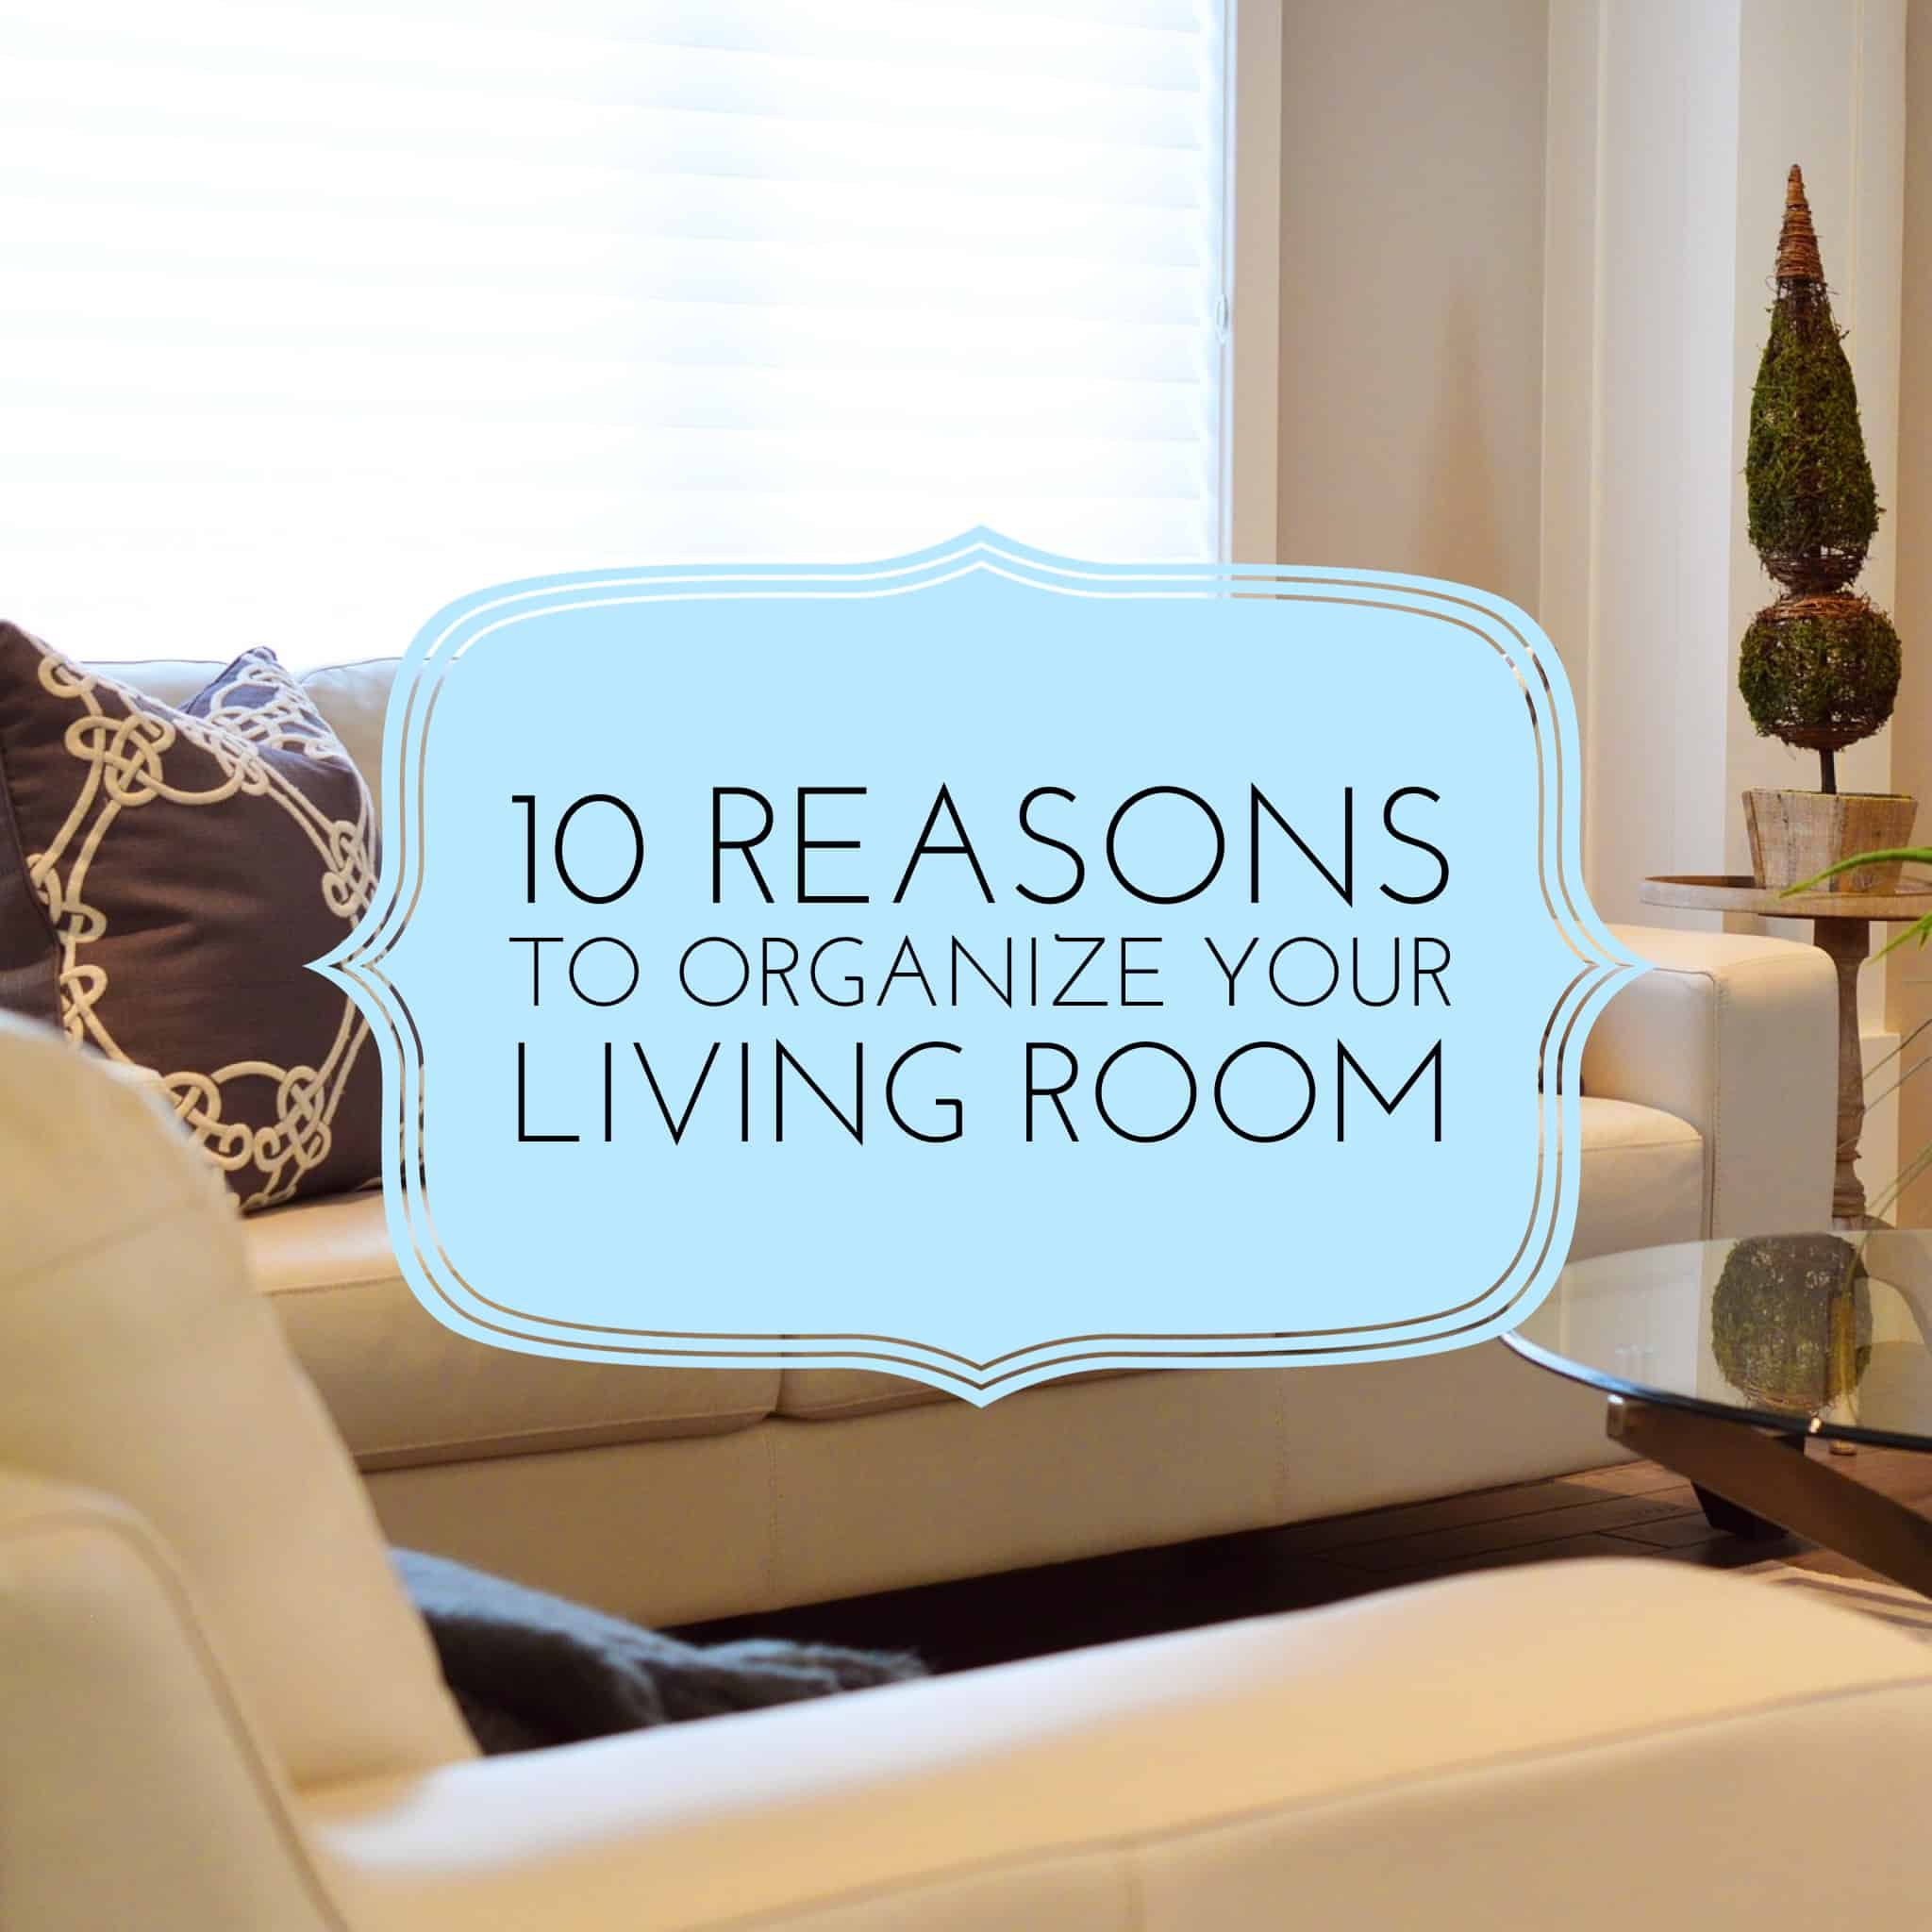 10 Reasons To Organize Your Living Room On Task Organizing